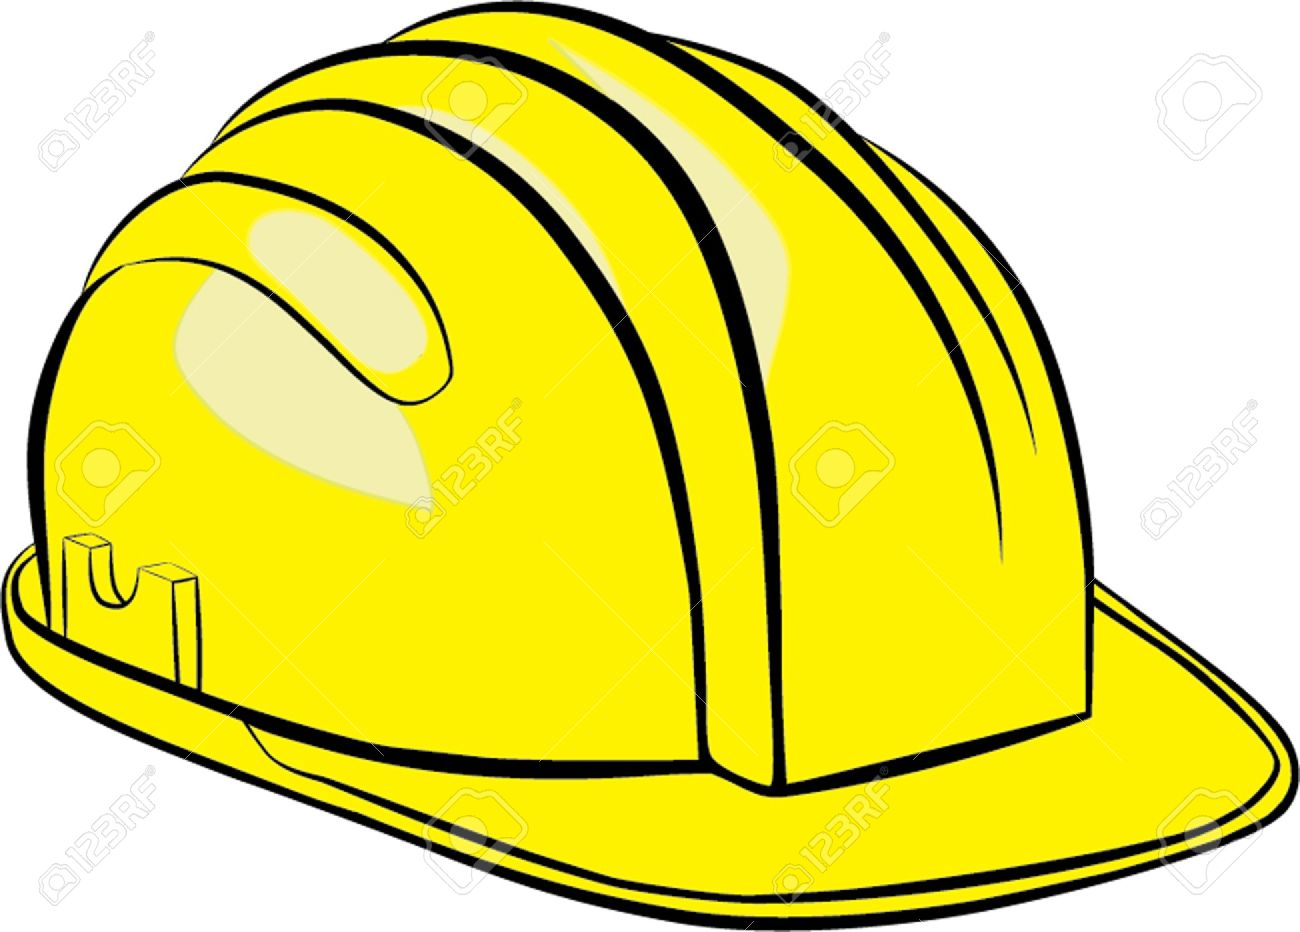 Engineer hat clipart 1 » Clipart Station.